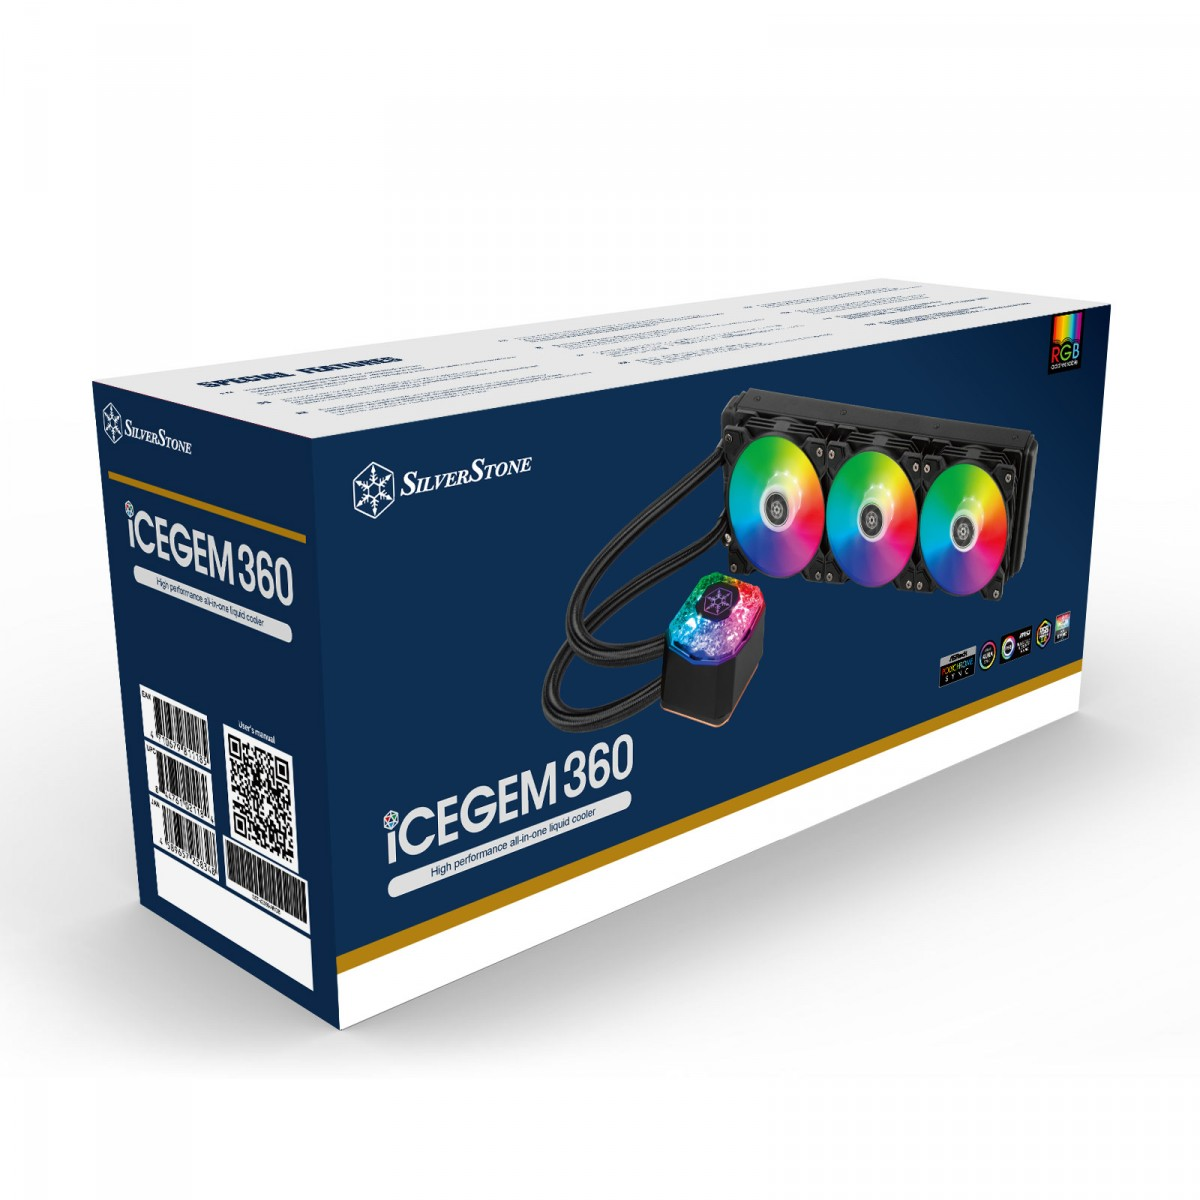 Water Cooler SilverStone IceGem 360, 360mm, Intel-AMD, SST-IG360-ARGB